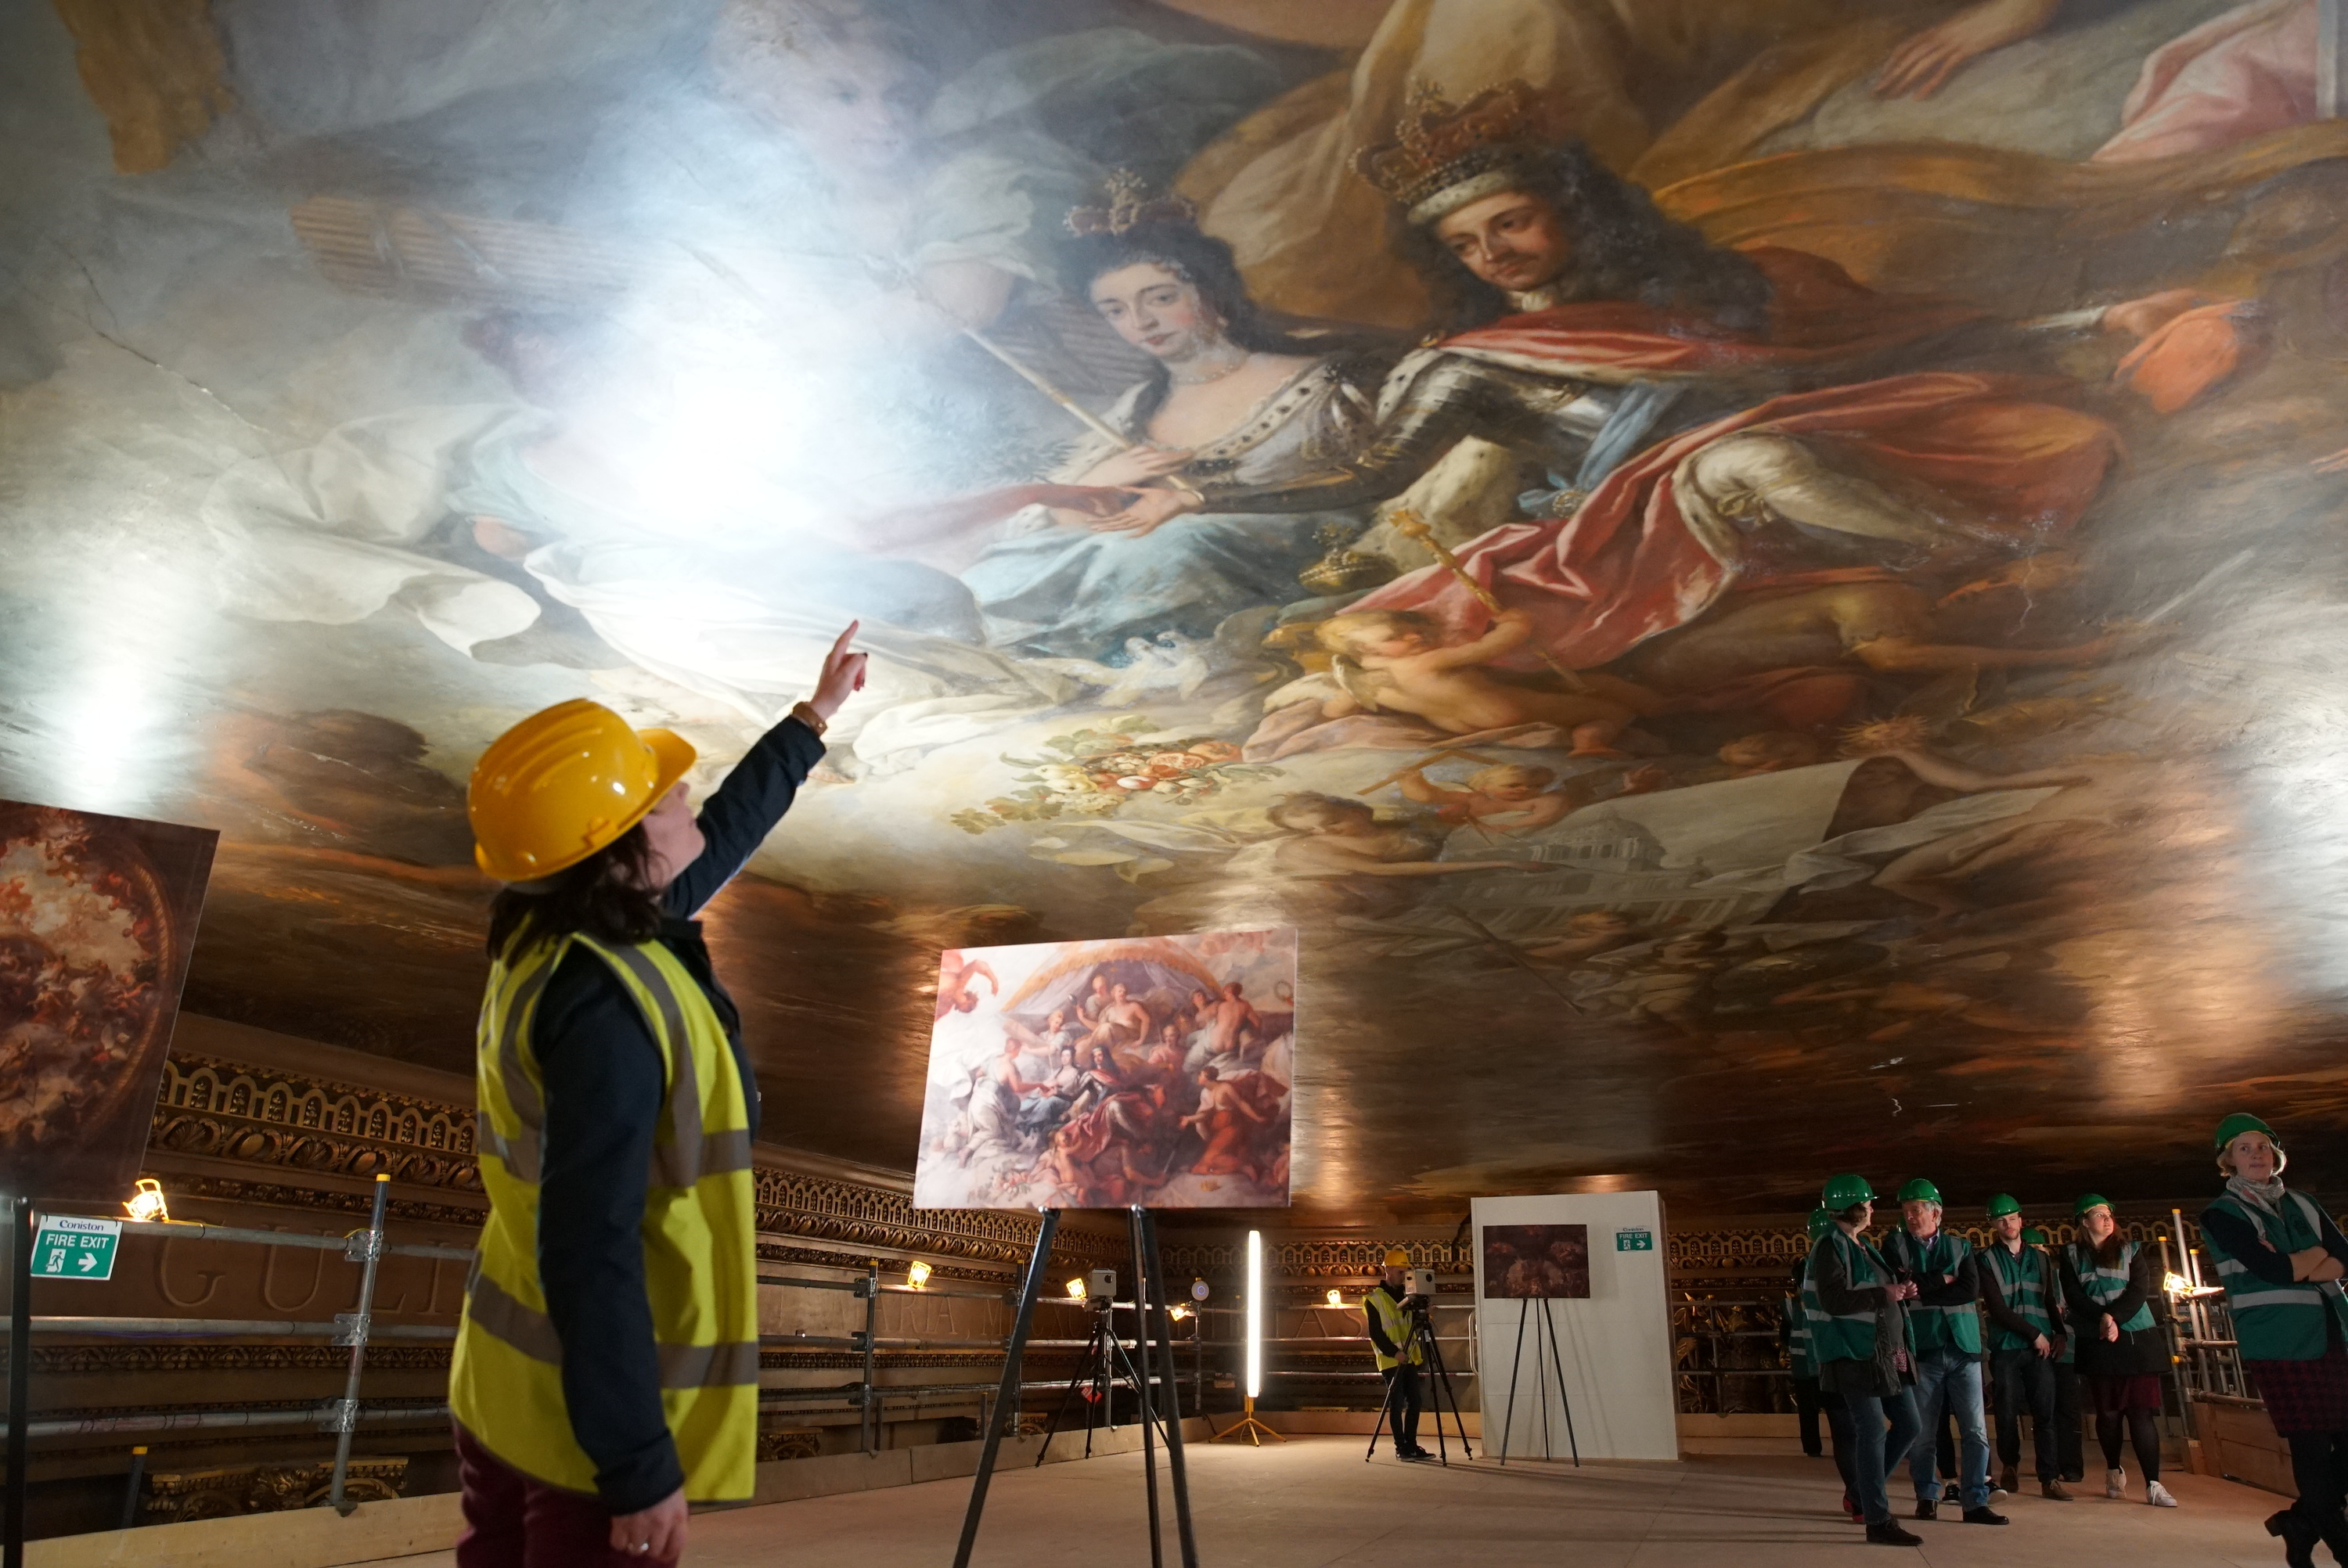 You can now take a tour of the 'Sistine Chapel of the UK' in Greenwich